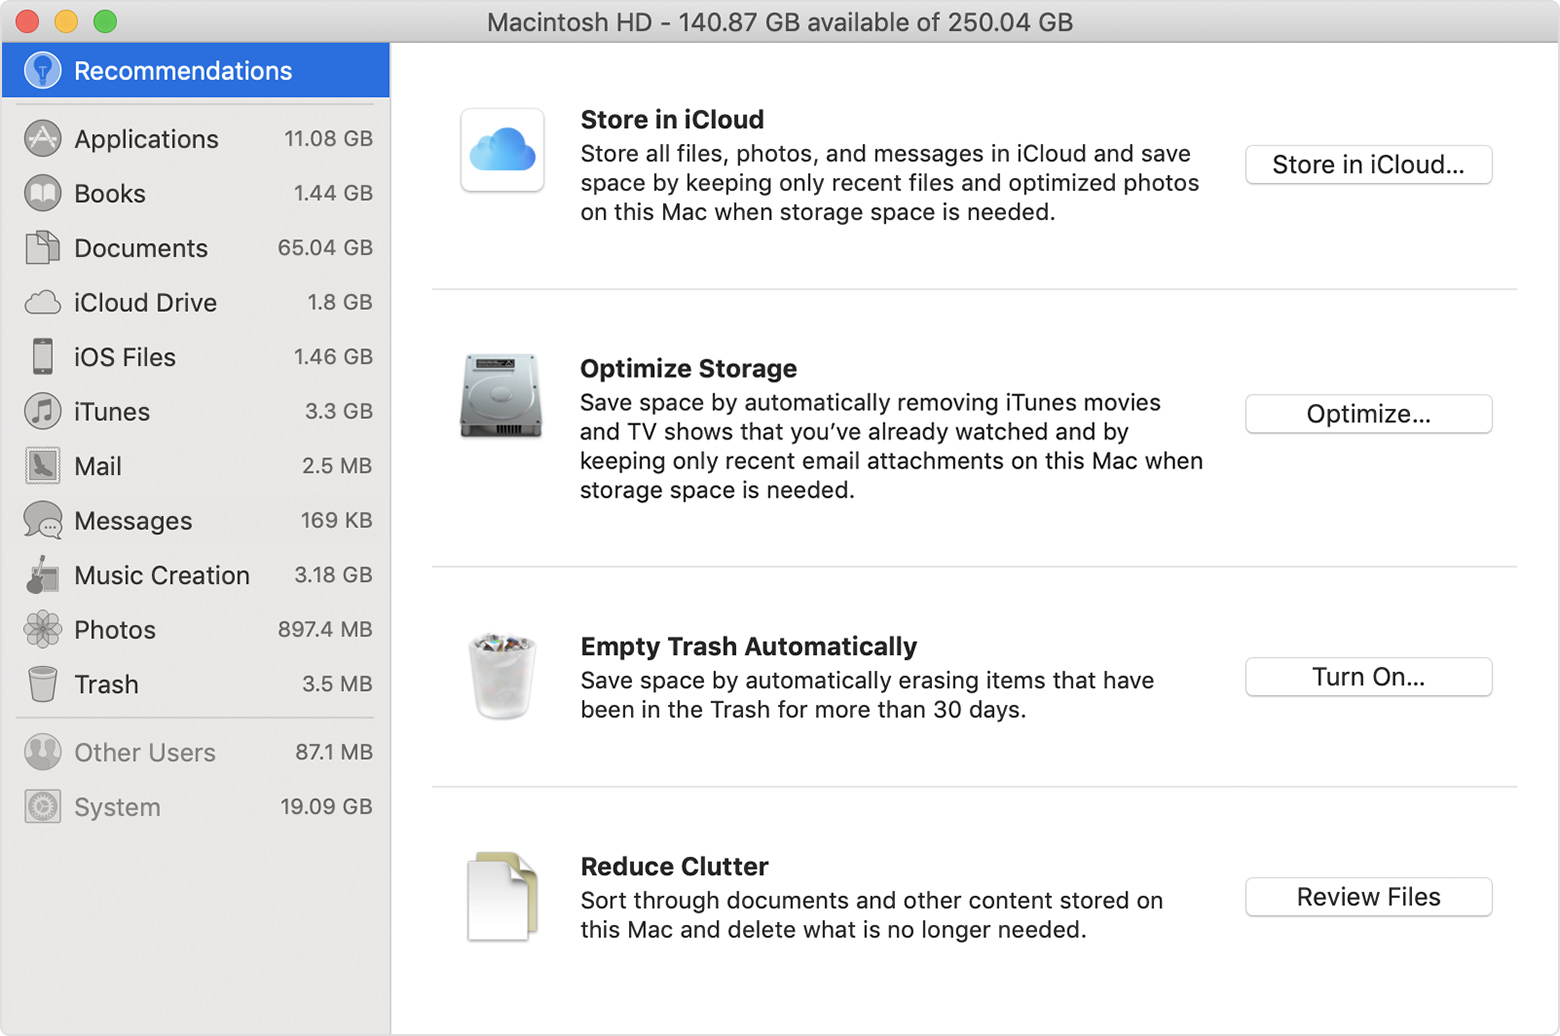 How to free up storage space on your Mac - Apple Support